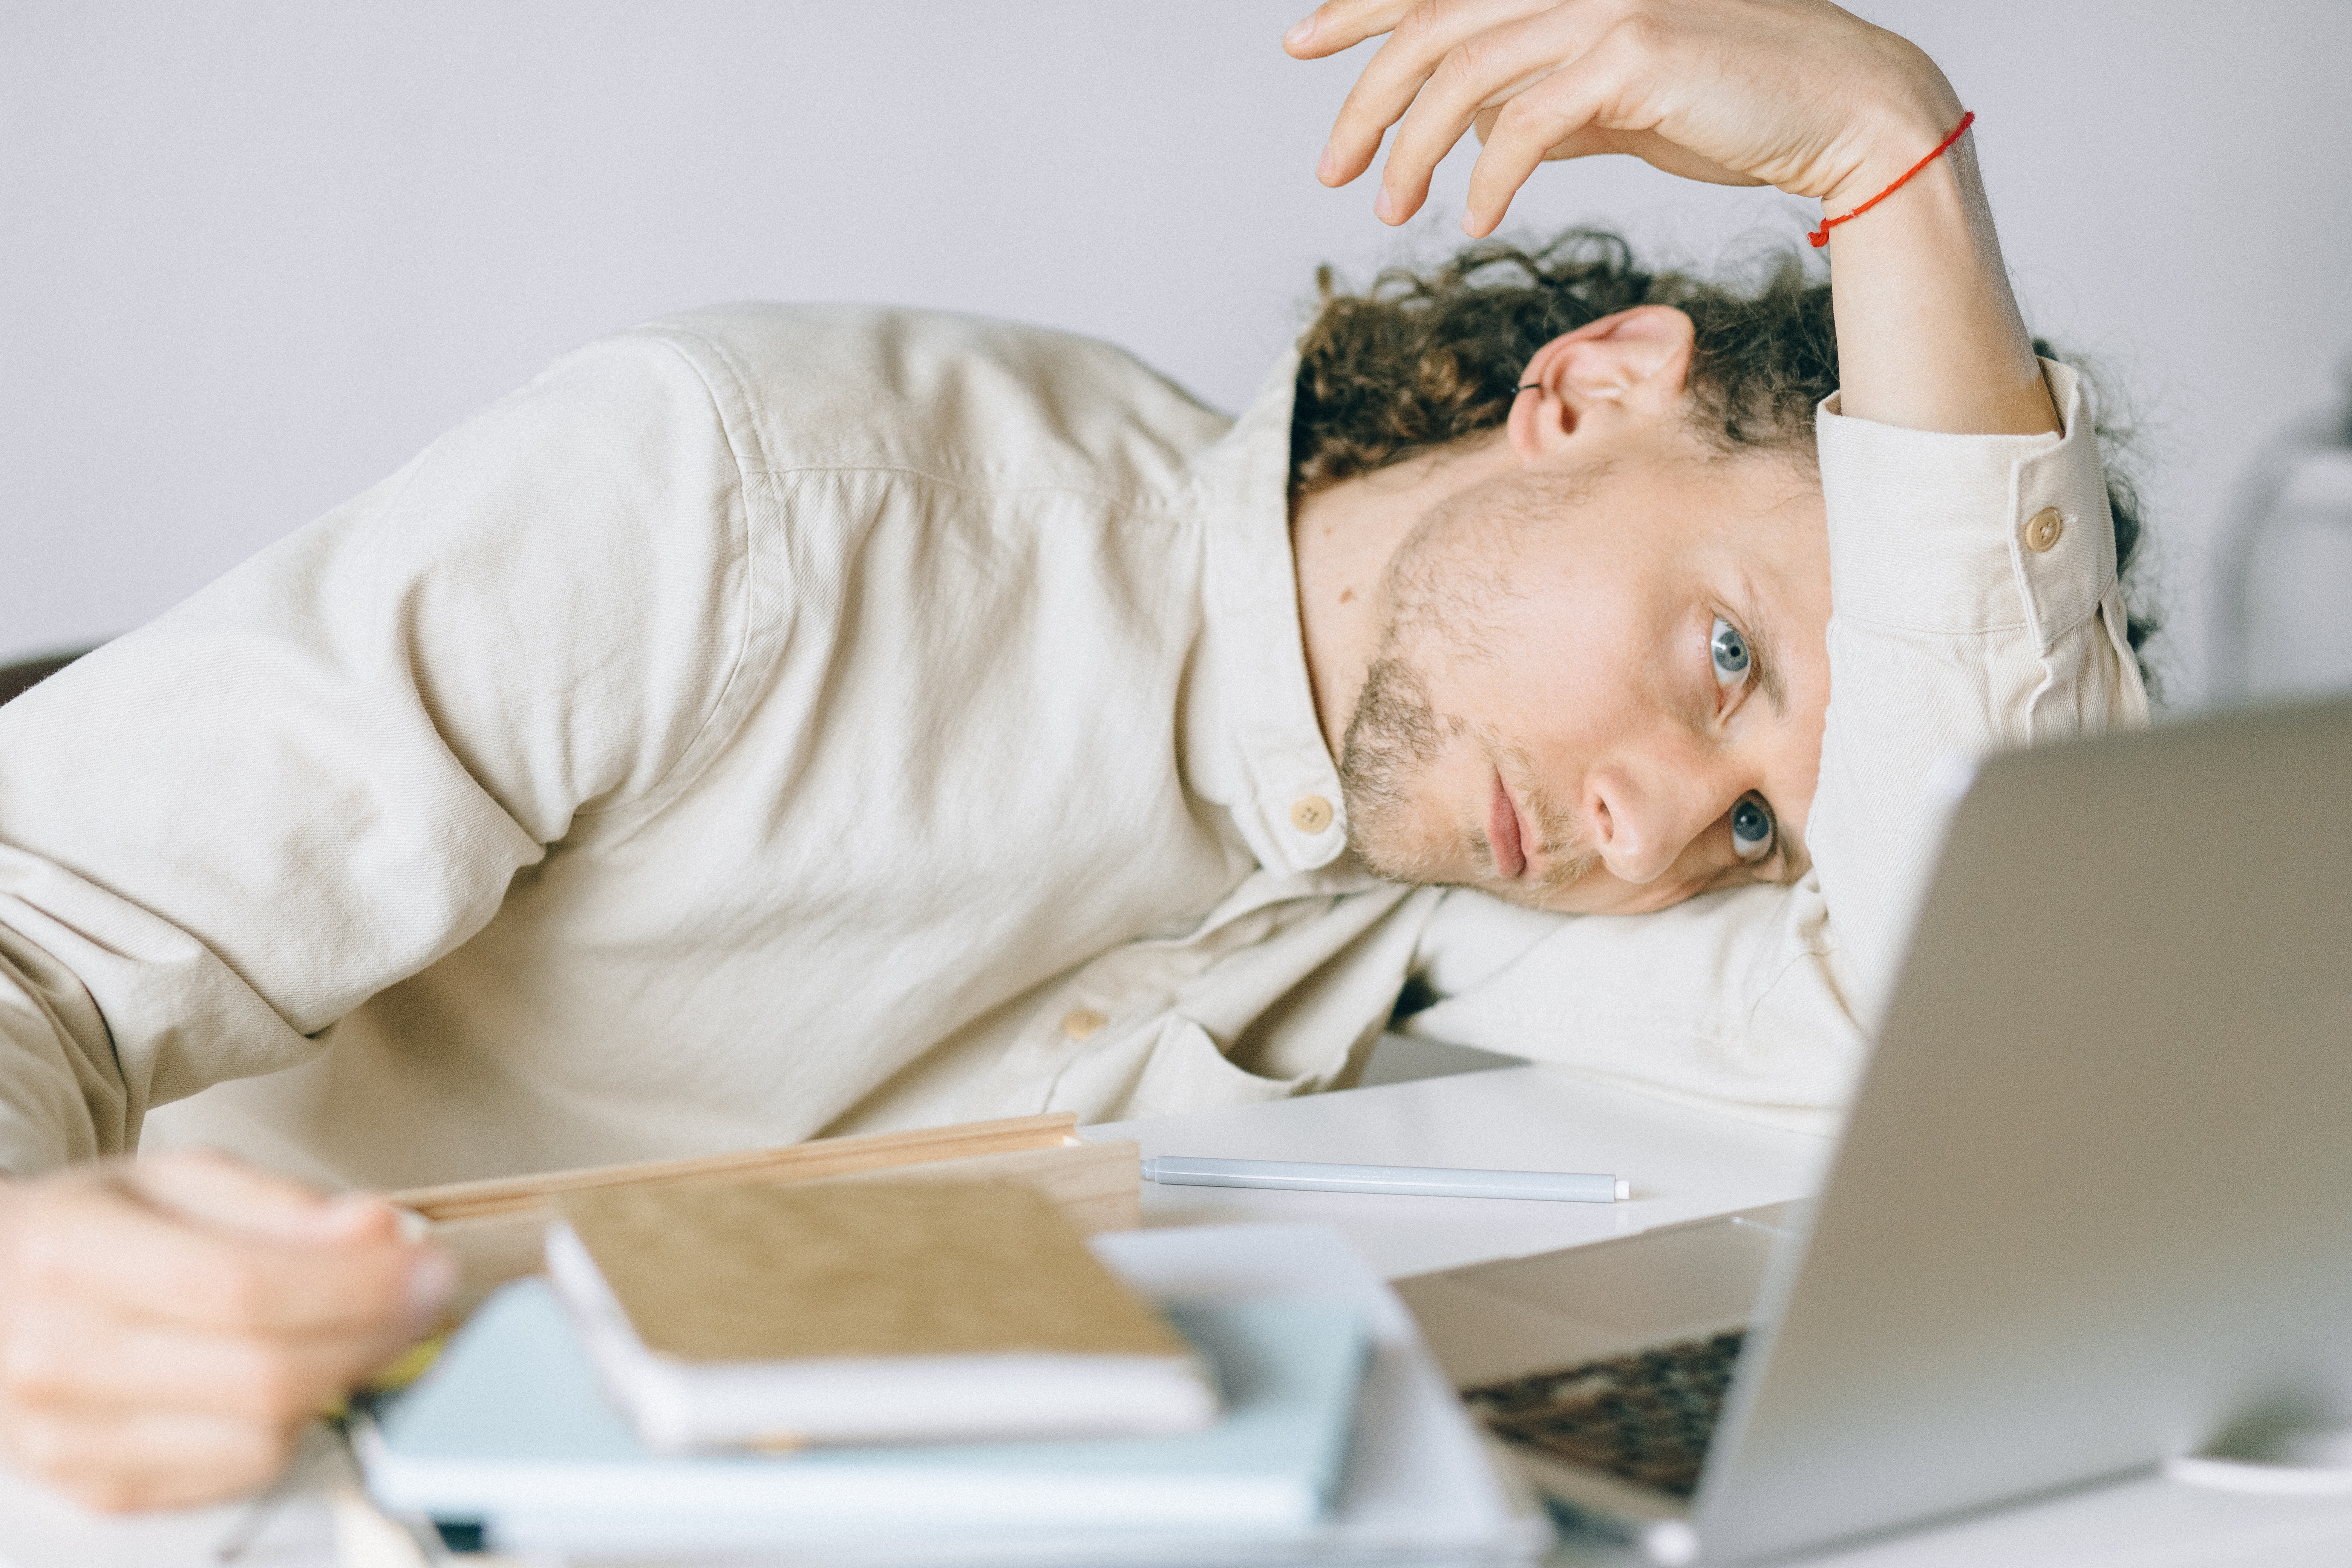 remote worker experiencing the struggle of zoom fatigue and pandemic workplace burnout